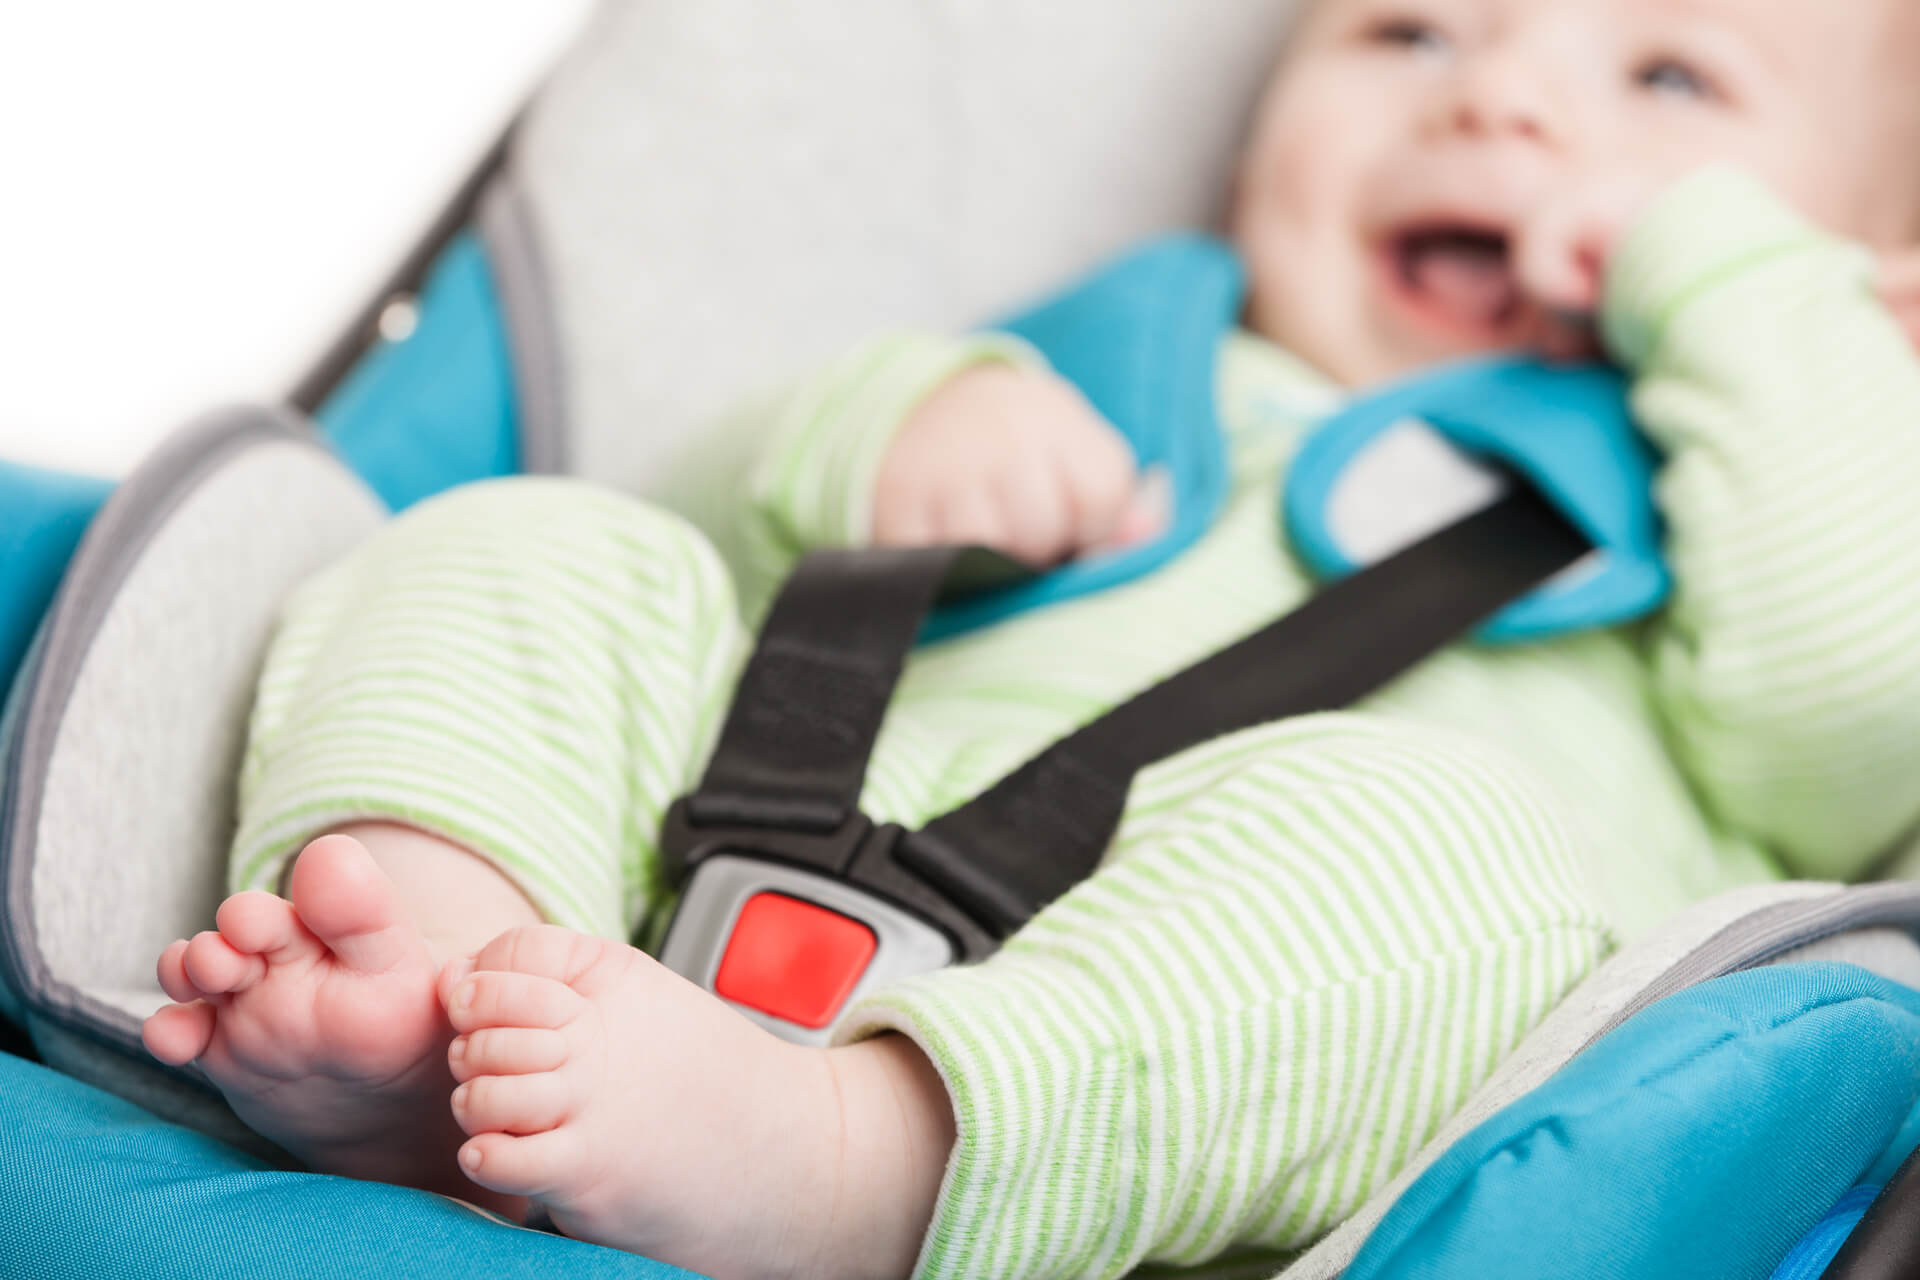 TURBO TOTS: 7 must-have car accessories for babies